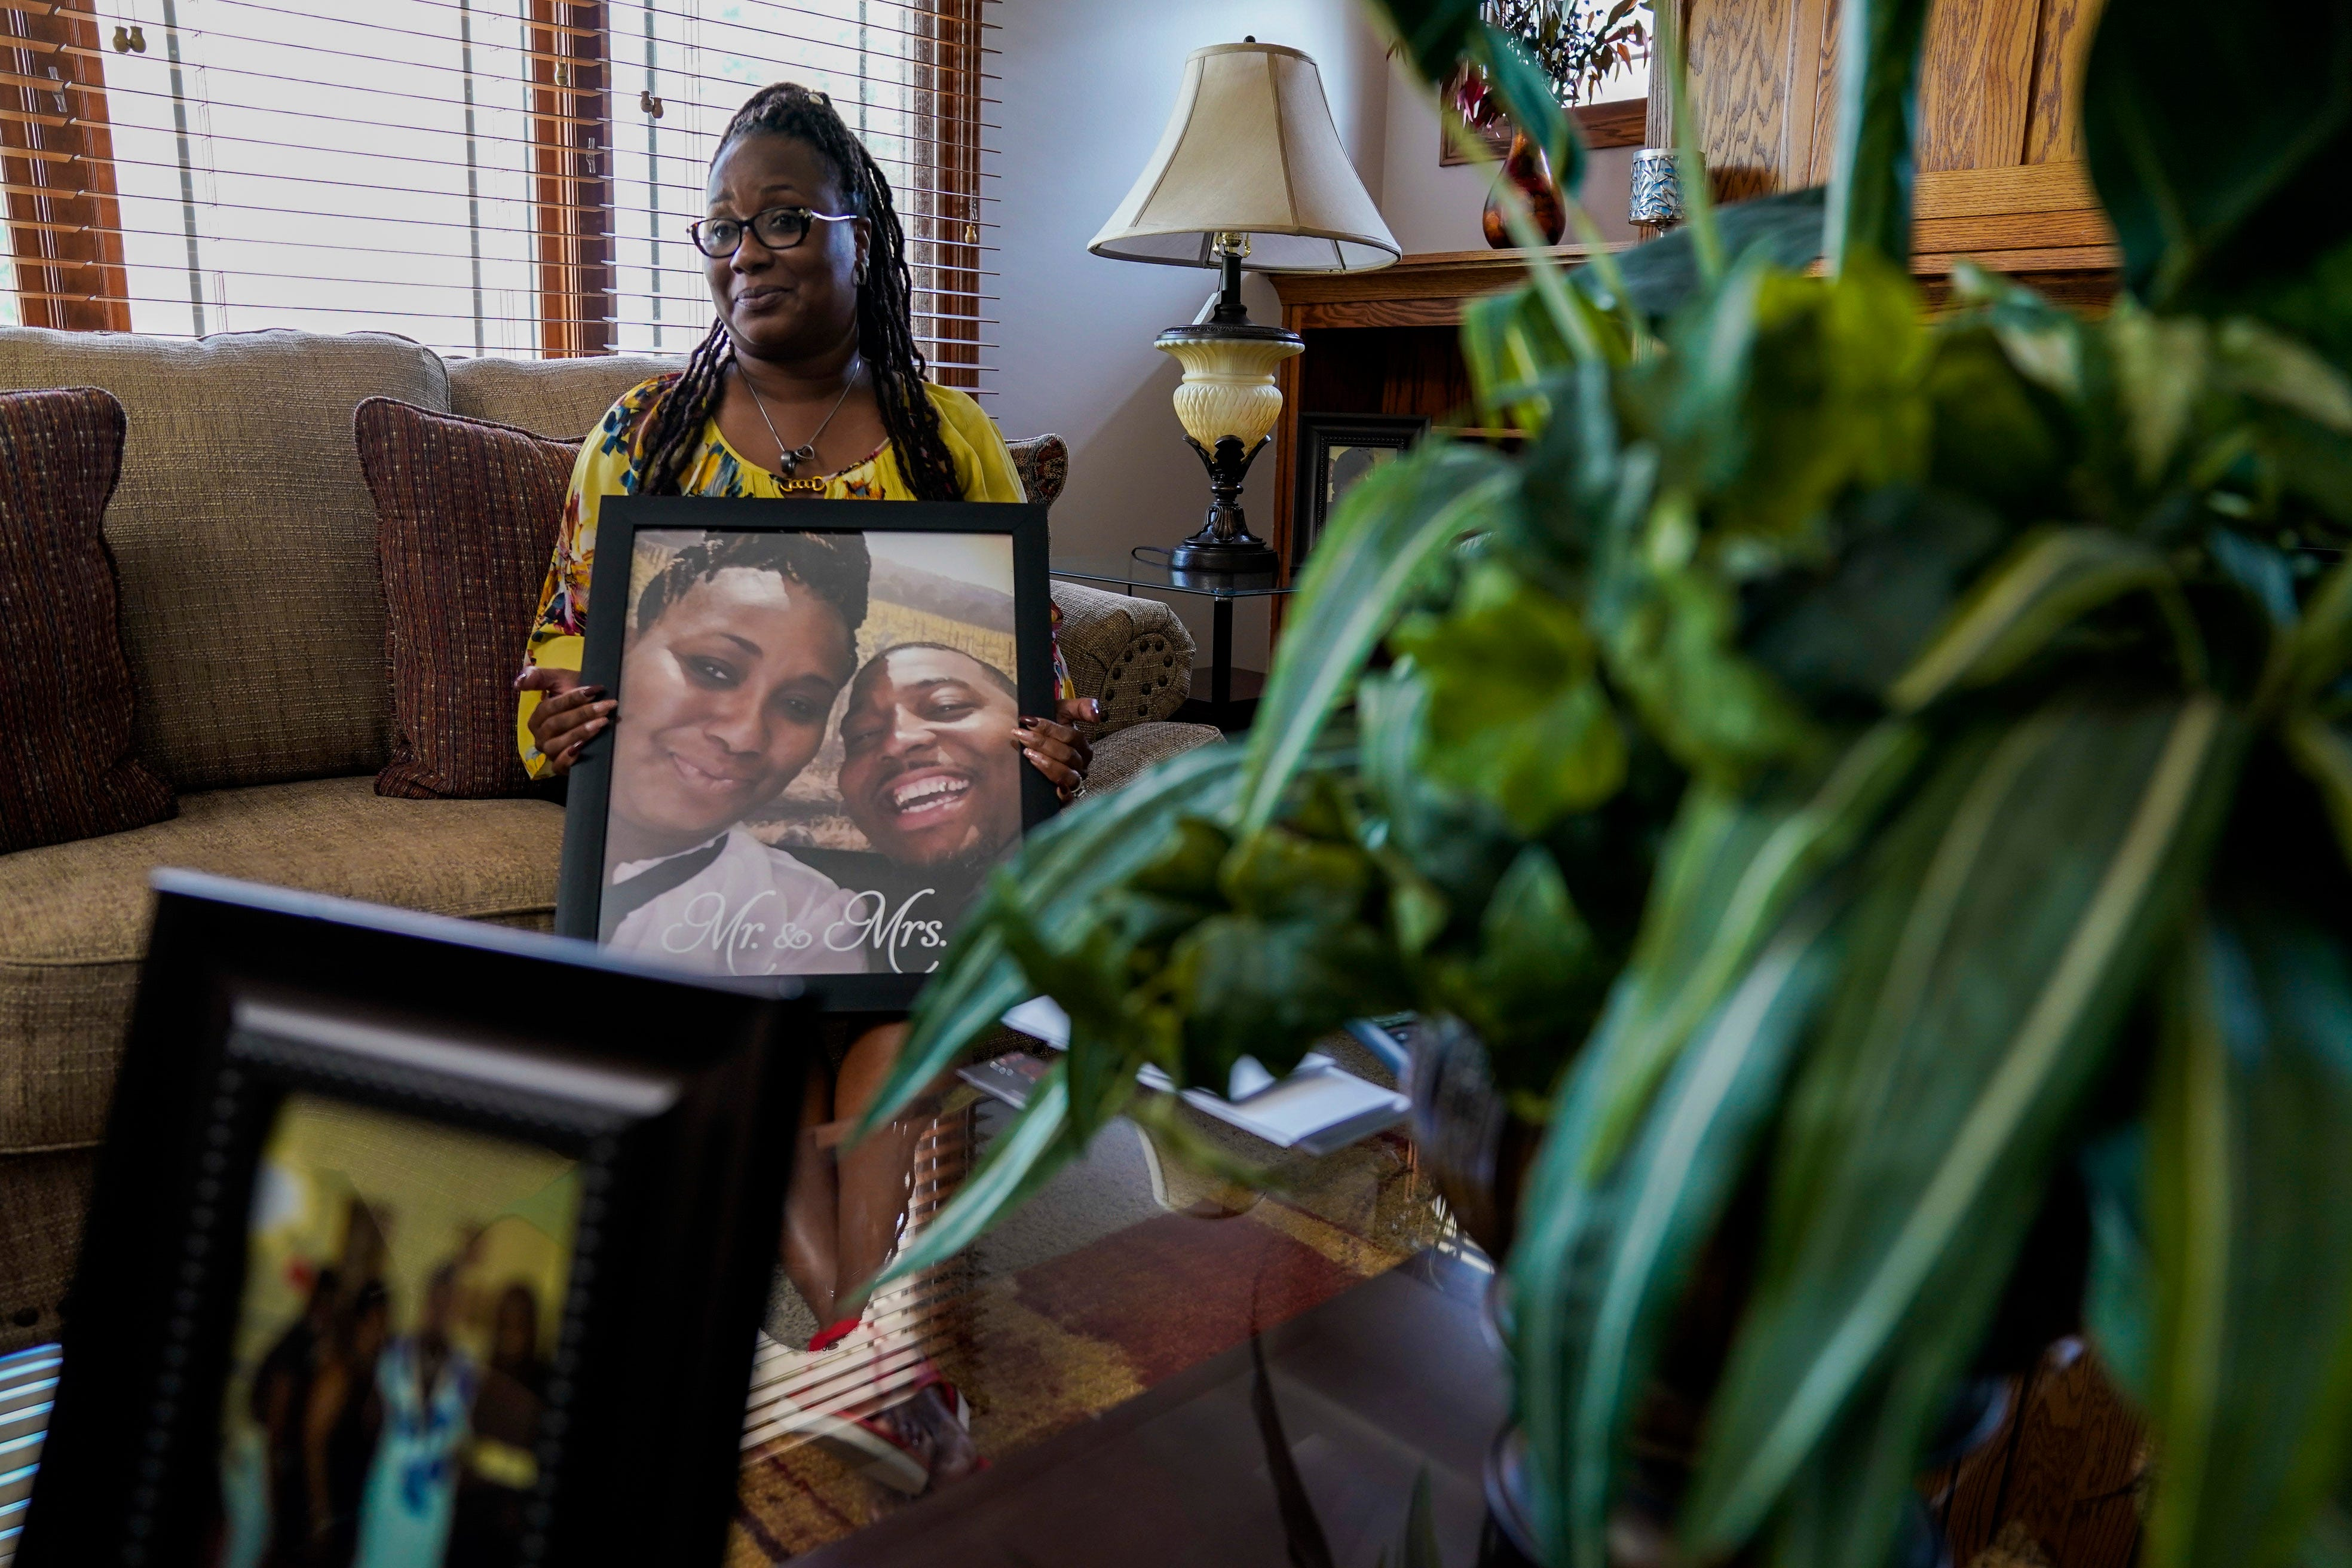 Eric Lurry's widow, Nicole, is suing the Joliet Police Department for negligence due to his death in custody.